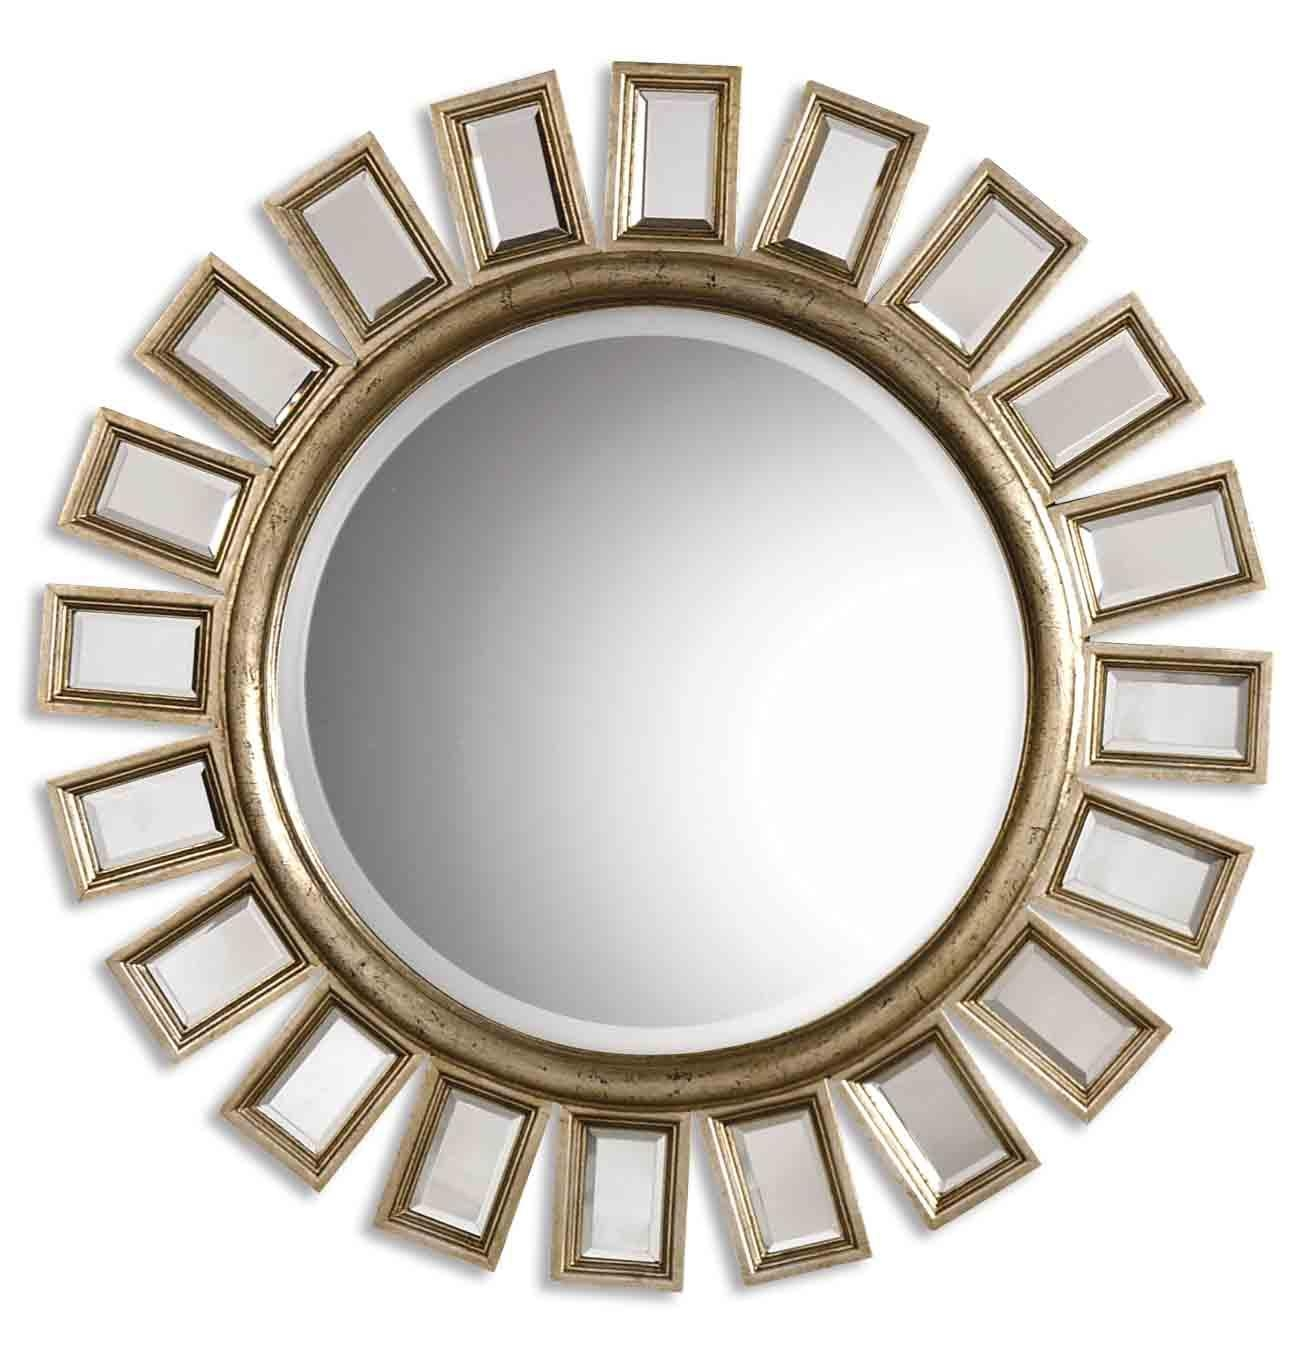 Uttermost Cyrus Round Silver Mirror 14076 B With Large Round Silver Mirror (Photo 13 of 20)